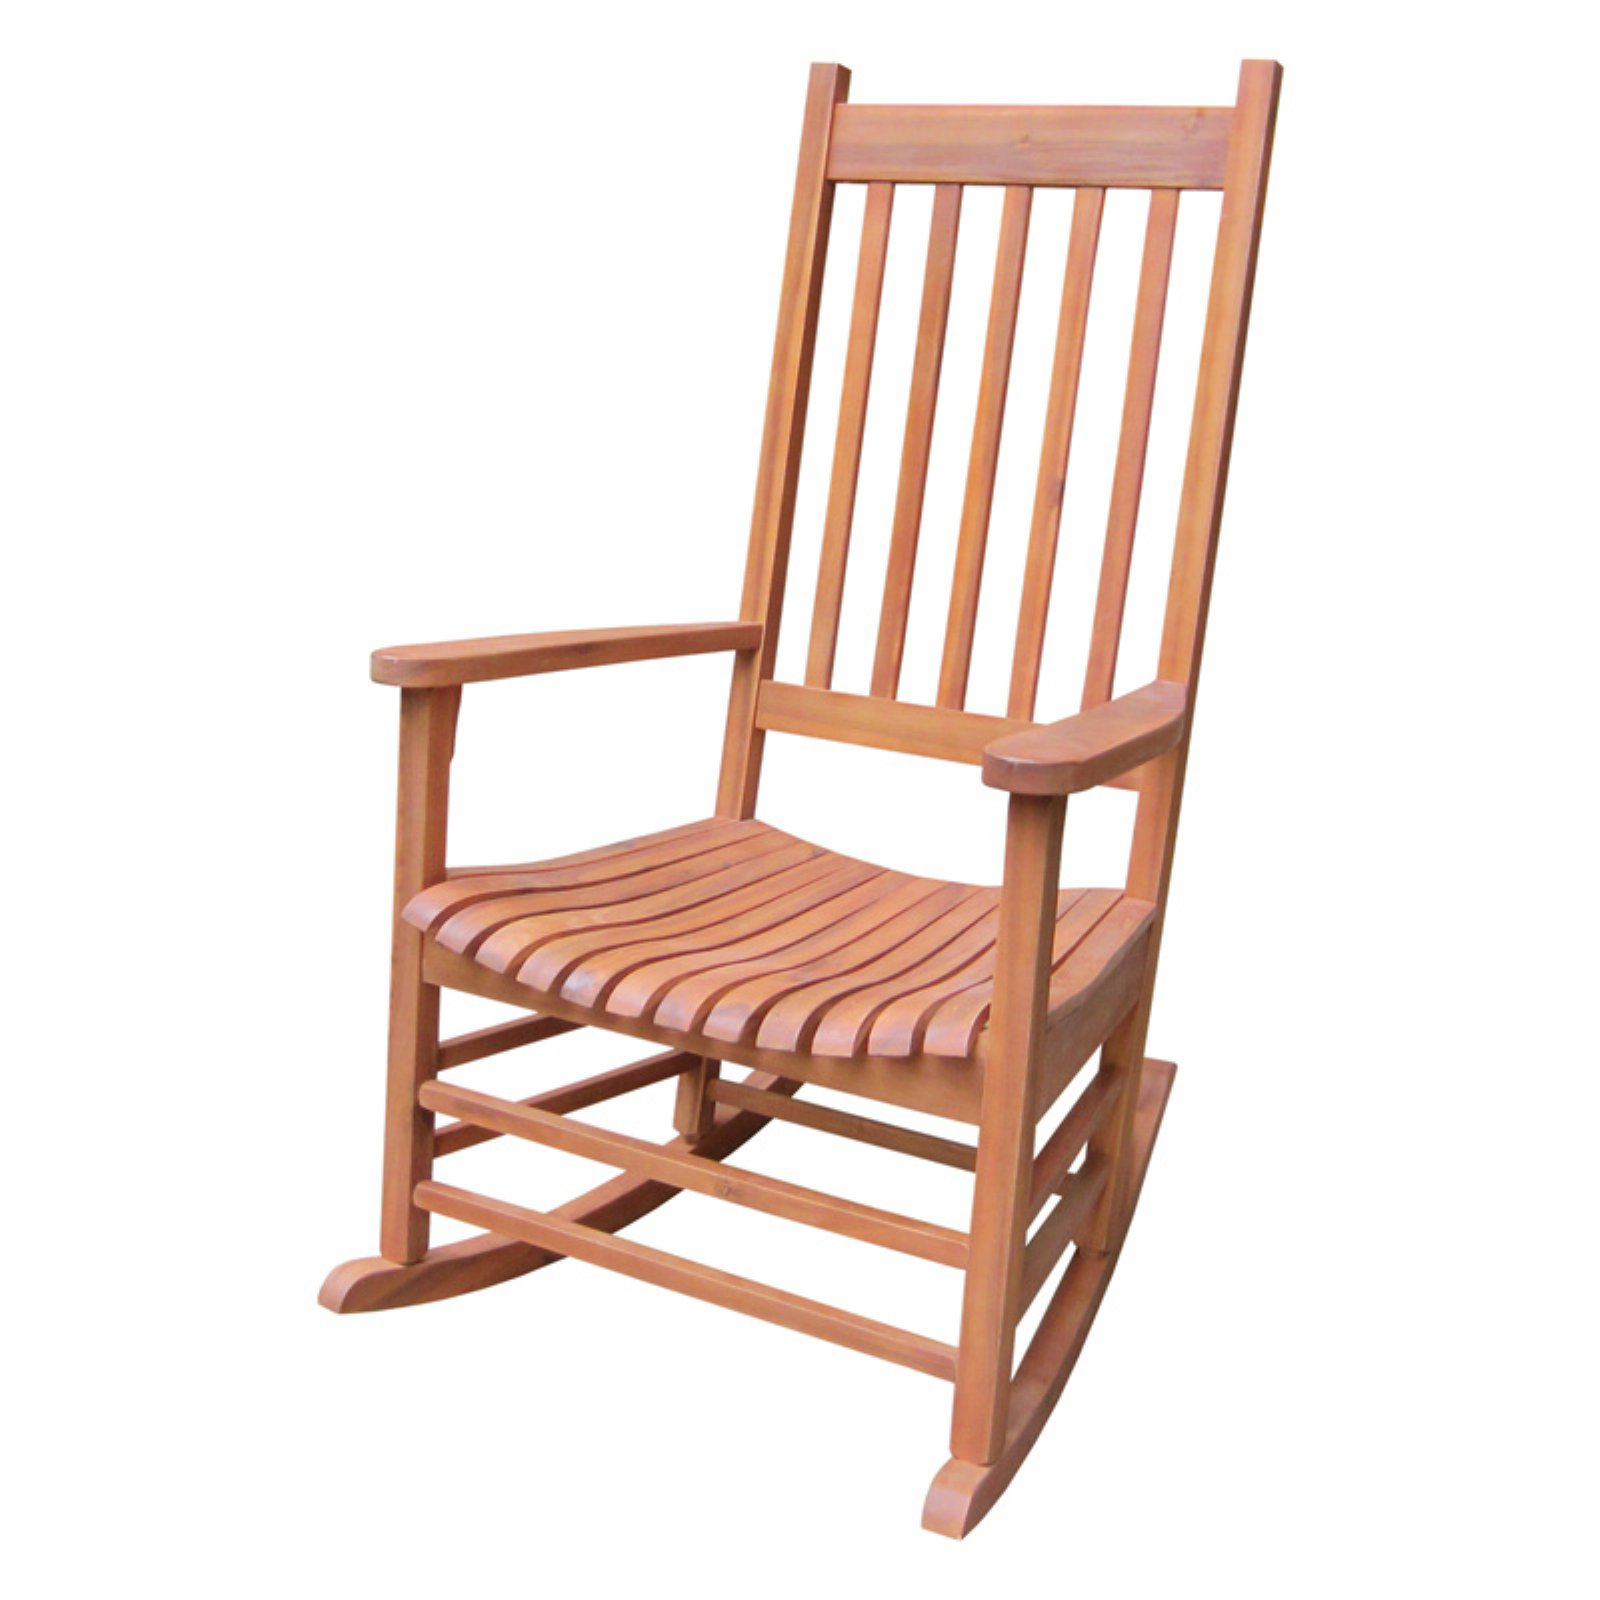 International Concepts Porch Rocker, Solid Wood, Oiled